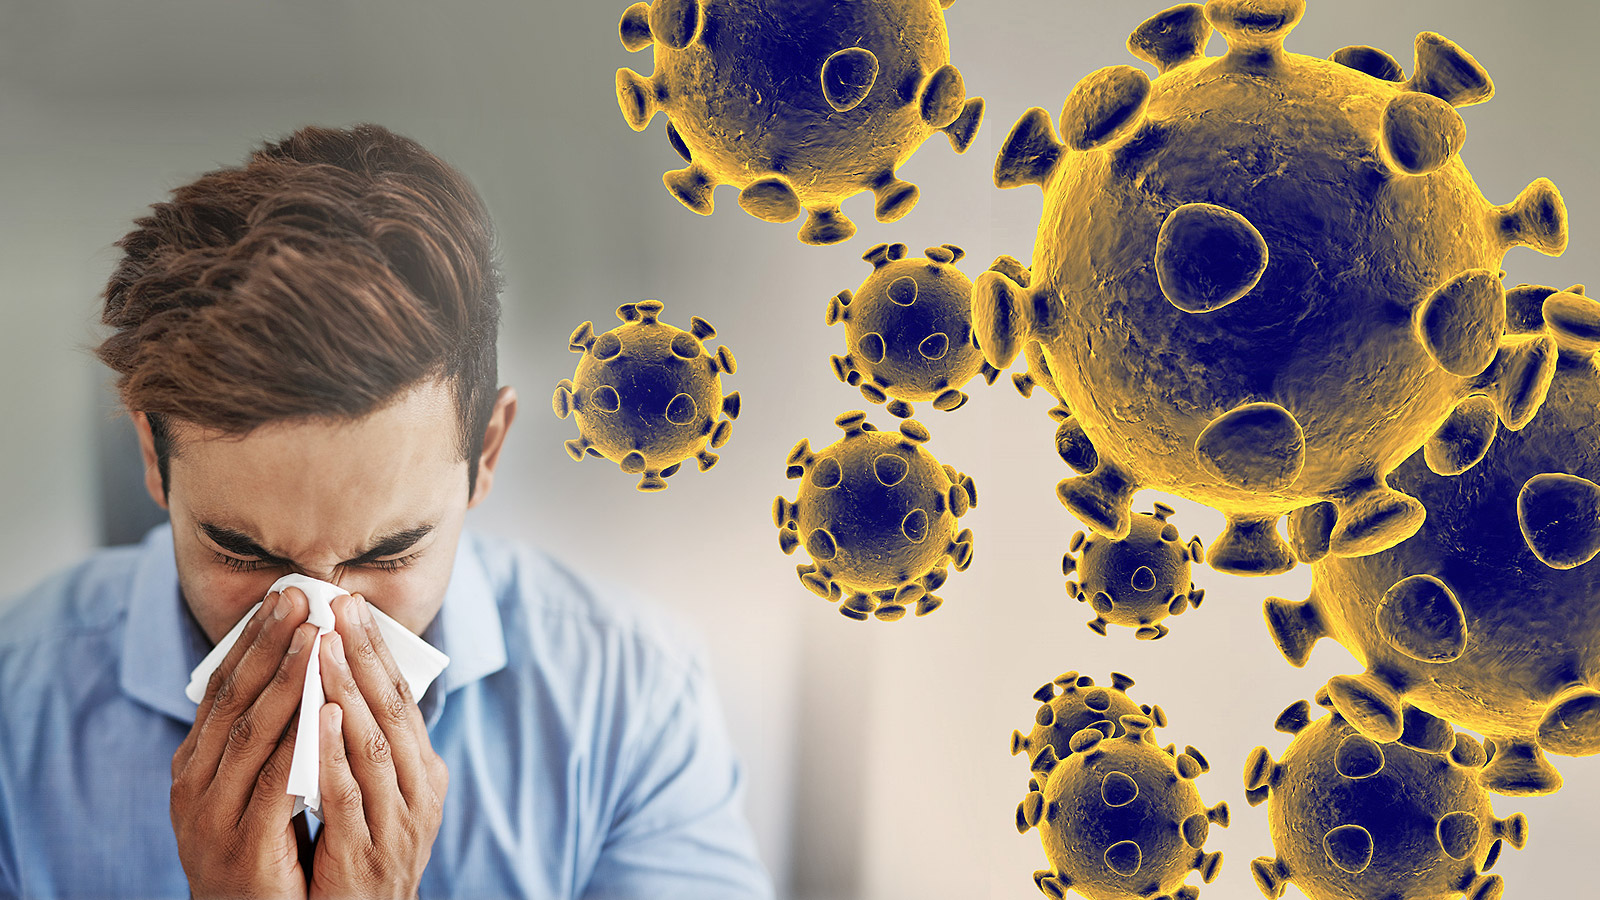 Coronavirus Might Be Affecting The World For The Next 18 Months Or